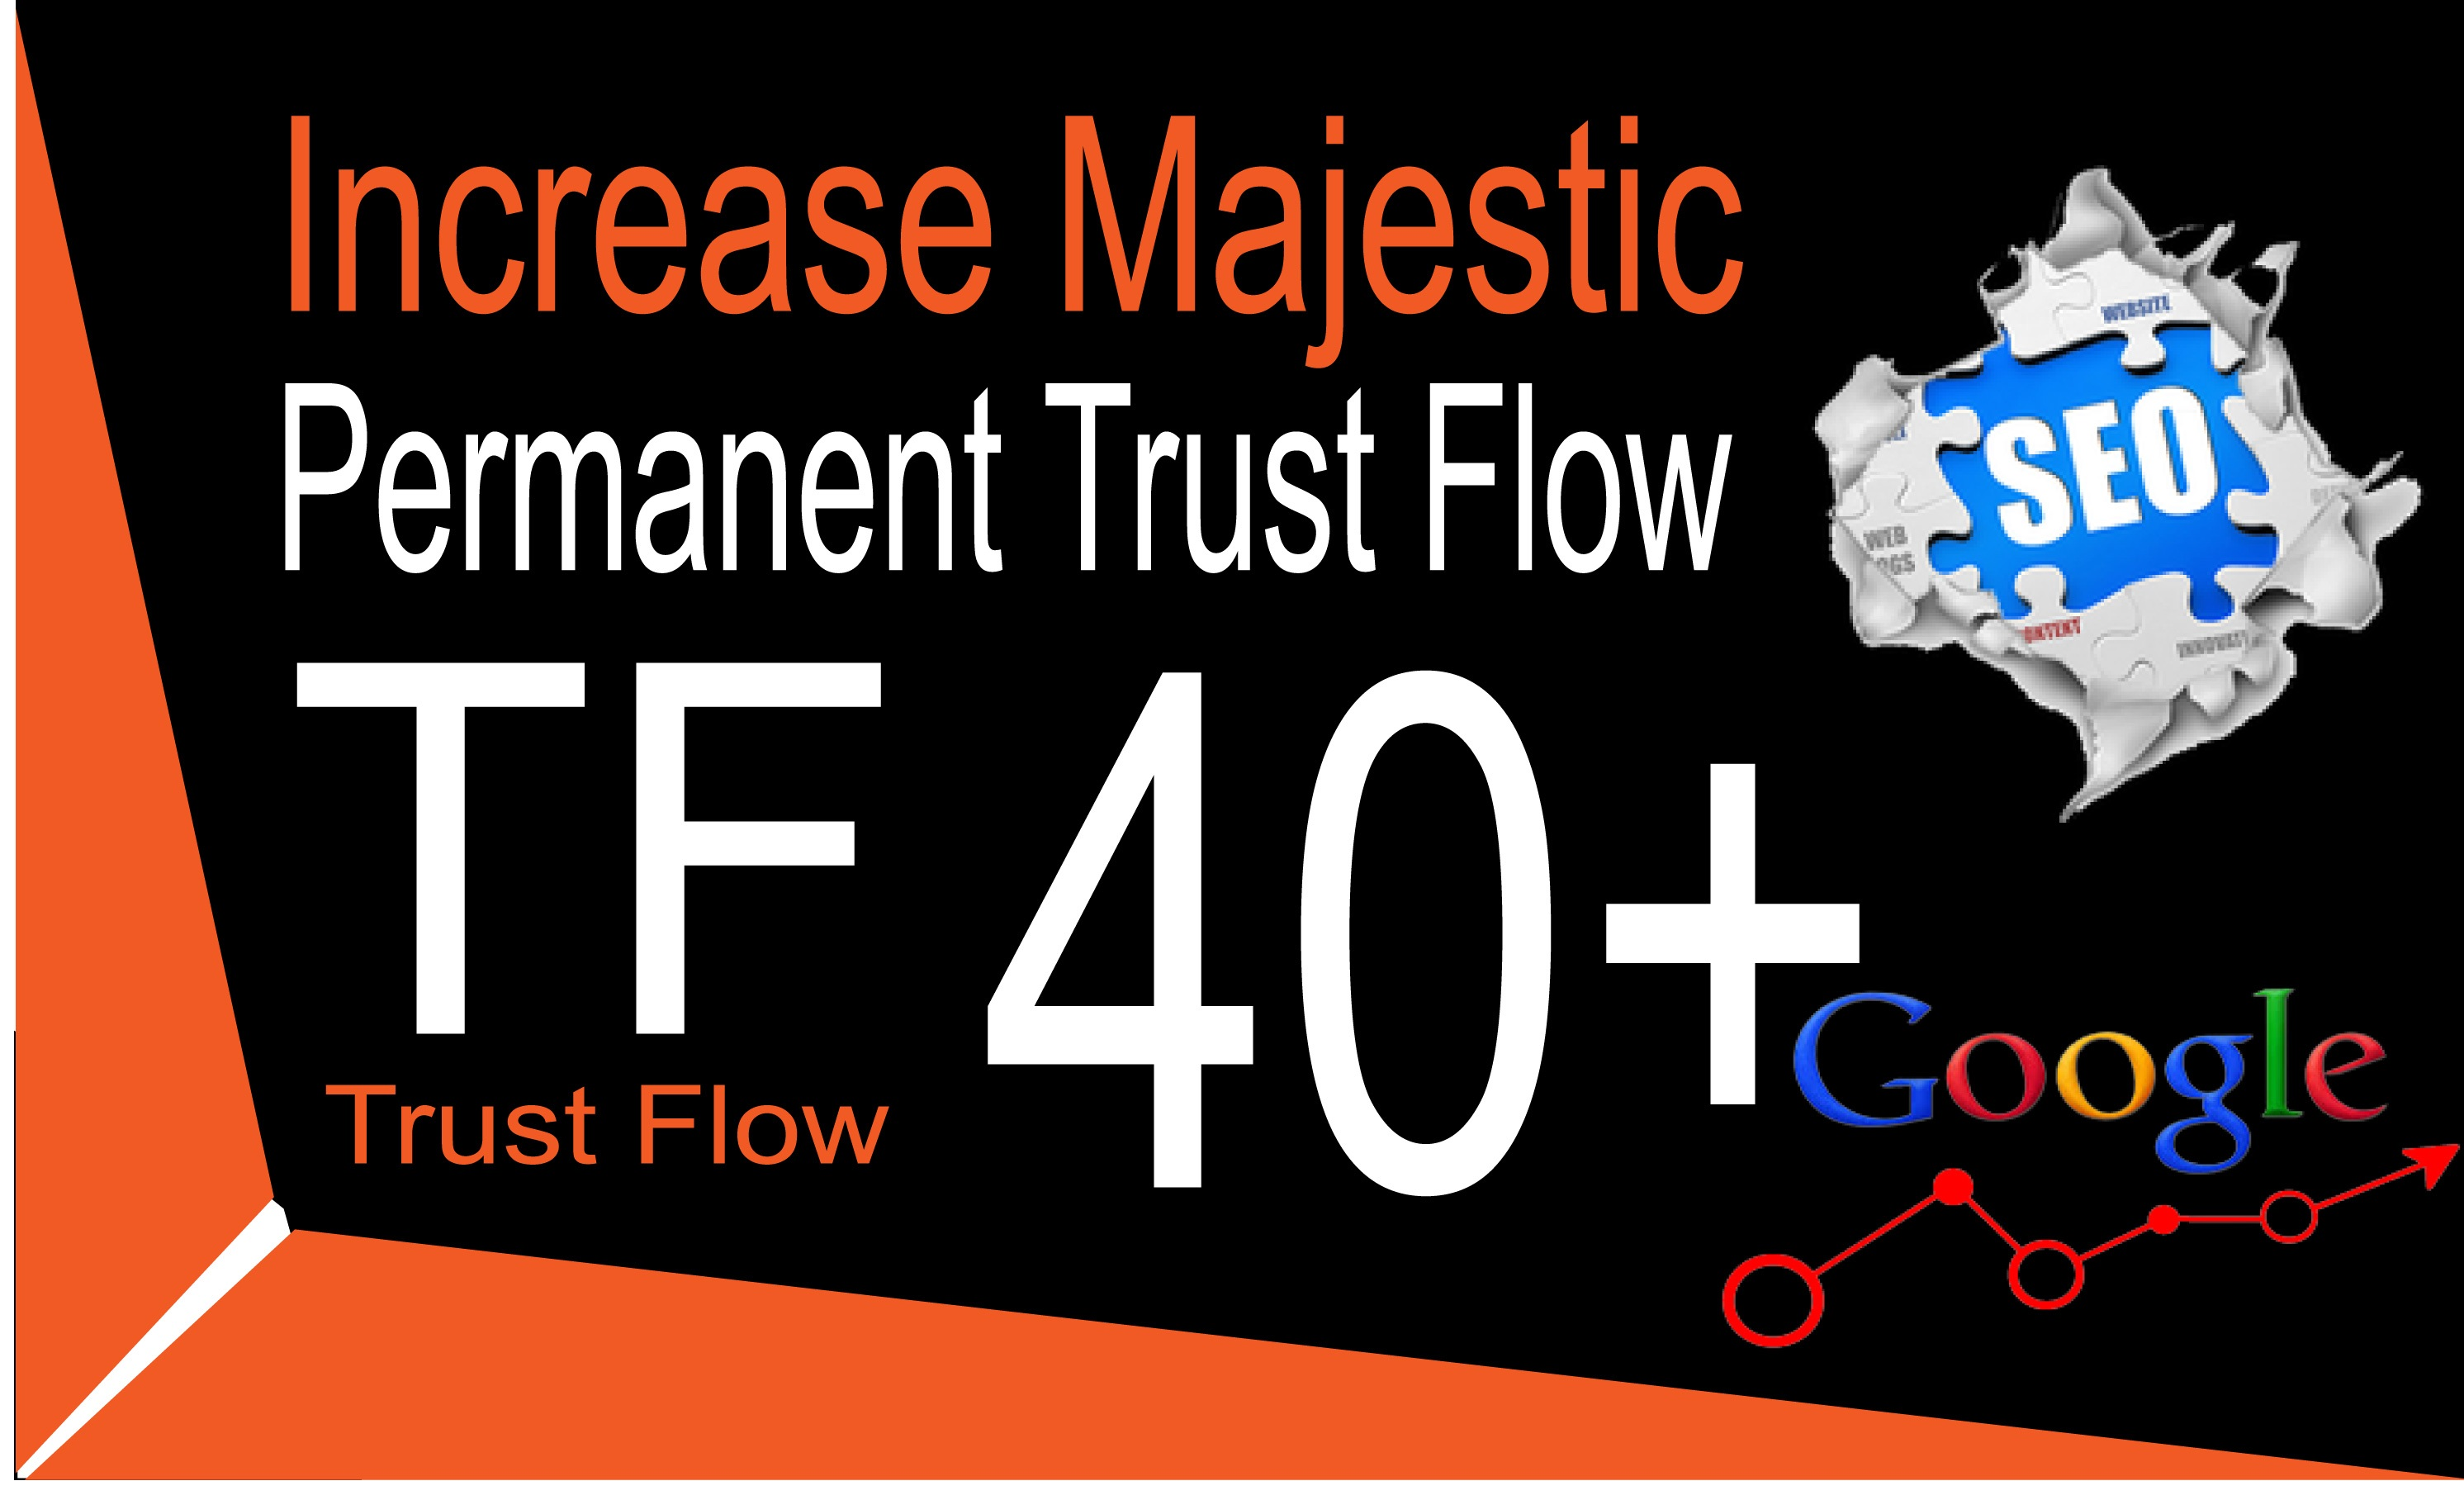 I will increase majestic trust flow rate tf 30plus